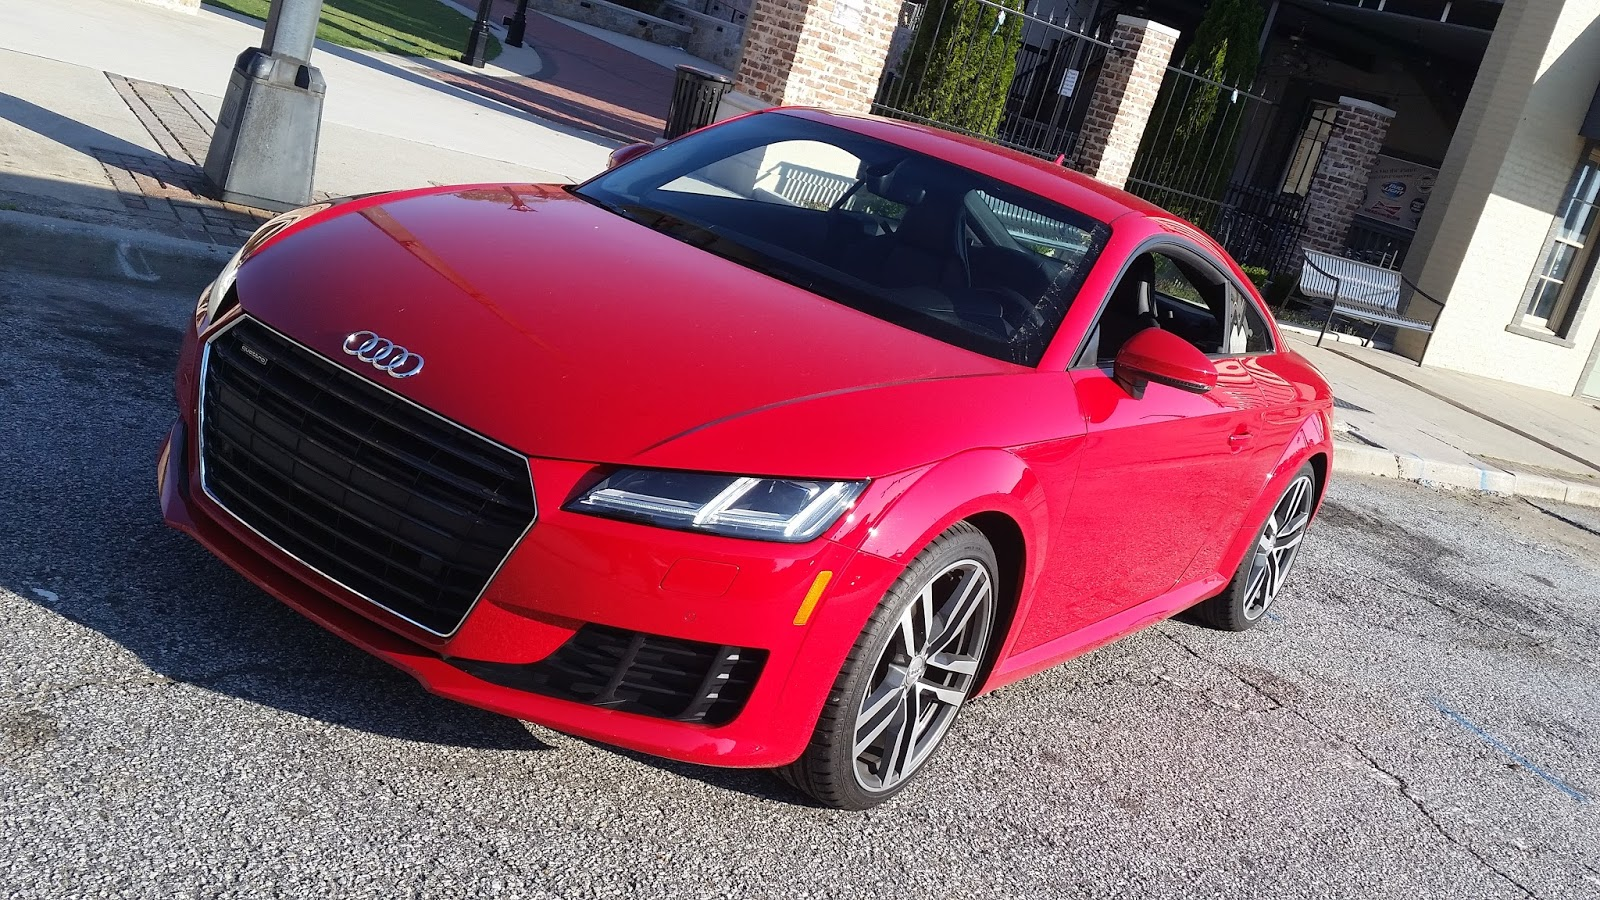 2016 Audi TT Coupe: An Innovative Groundbreaking Vehicle